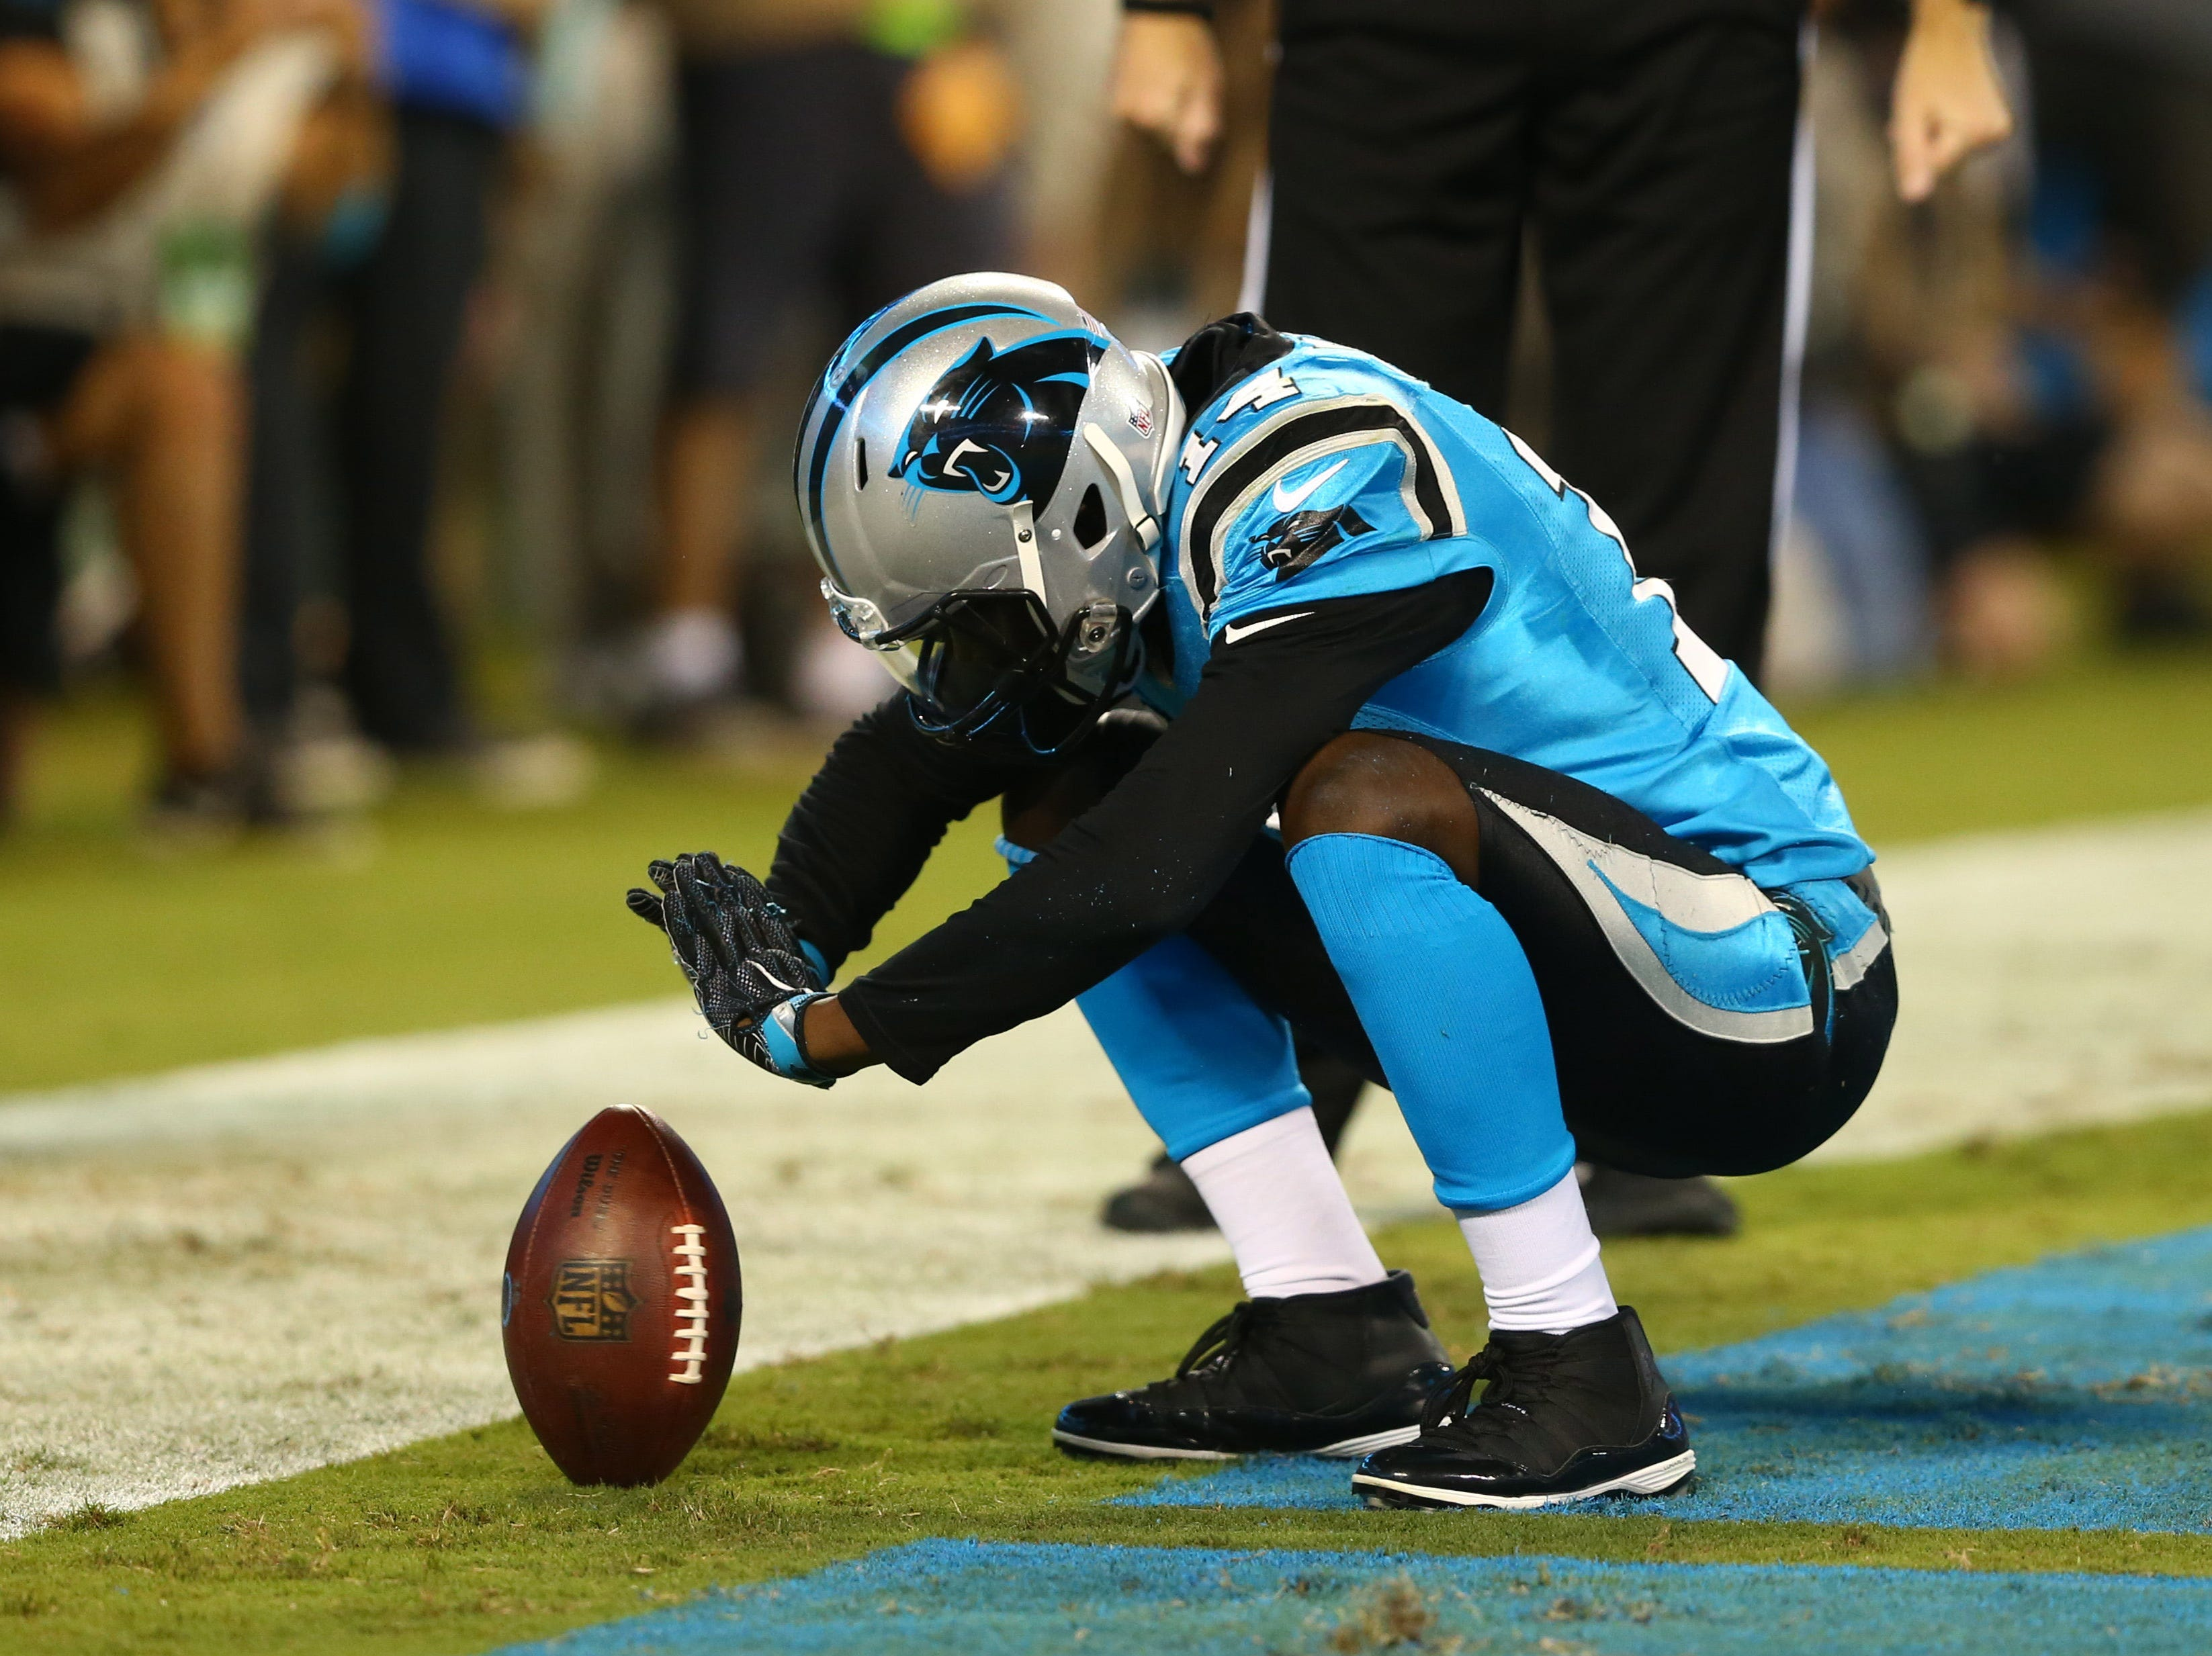 Carolina Panthers wide receiver Mose Frazier (14) spins a football after a touchdown in the fourth quarter against the New England Patriots at Bank of America Stadium.